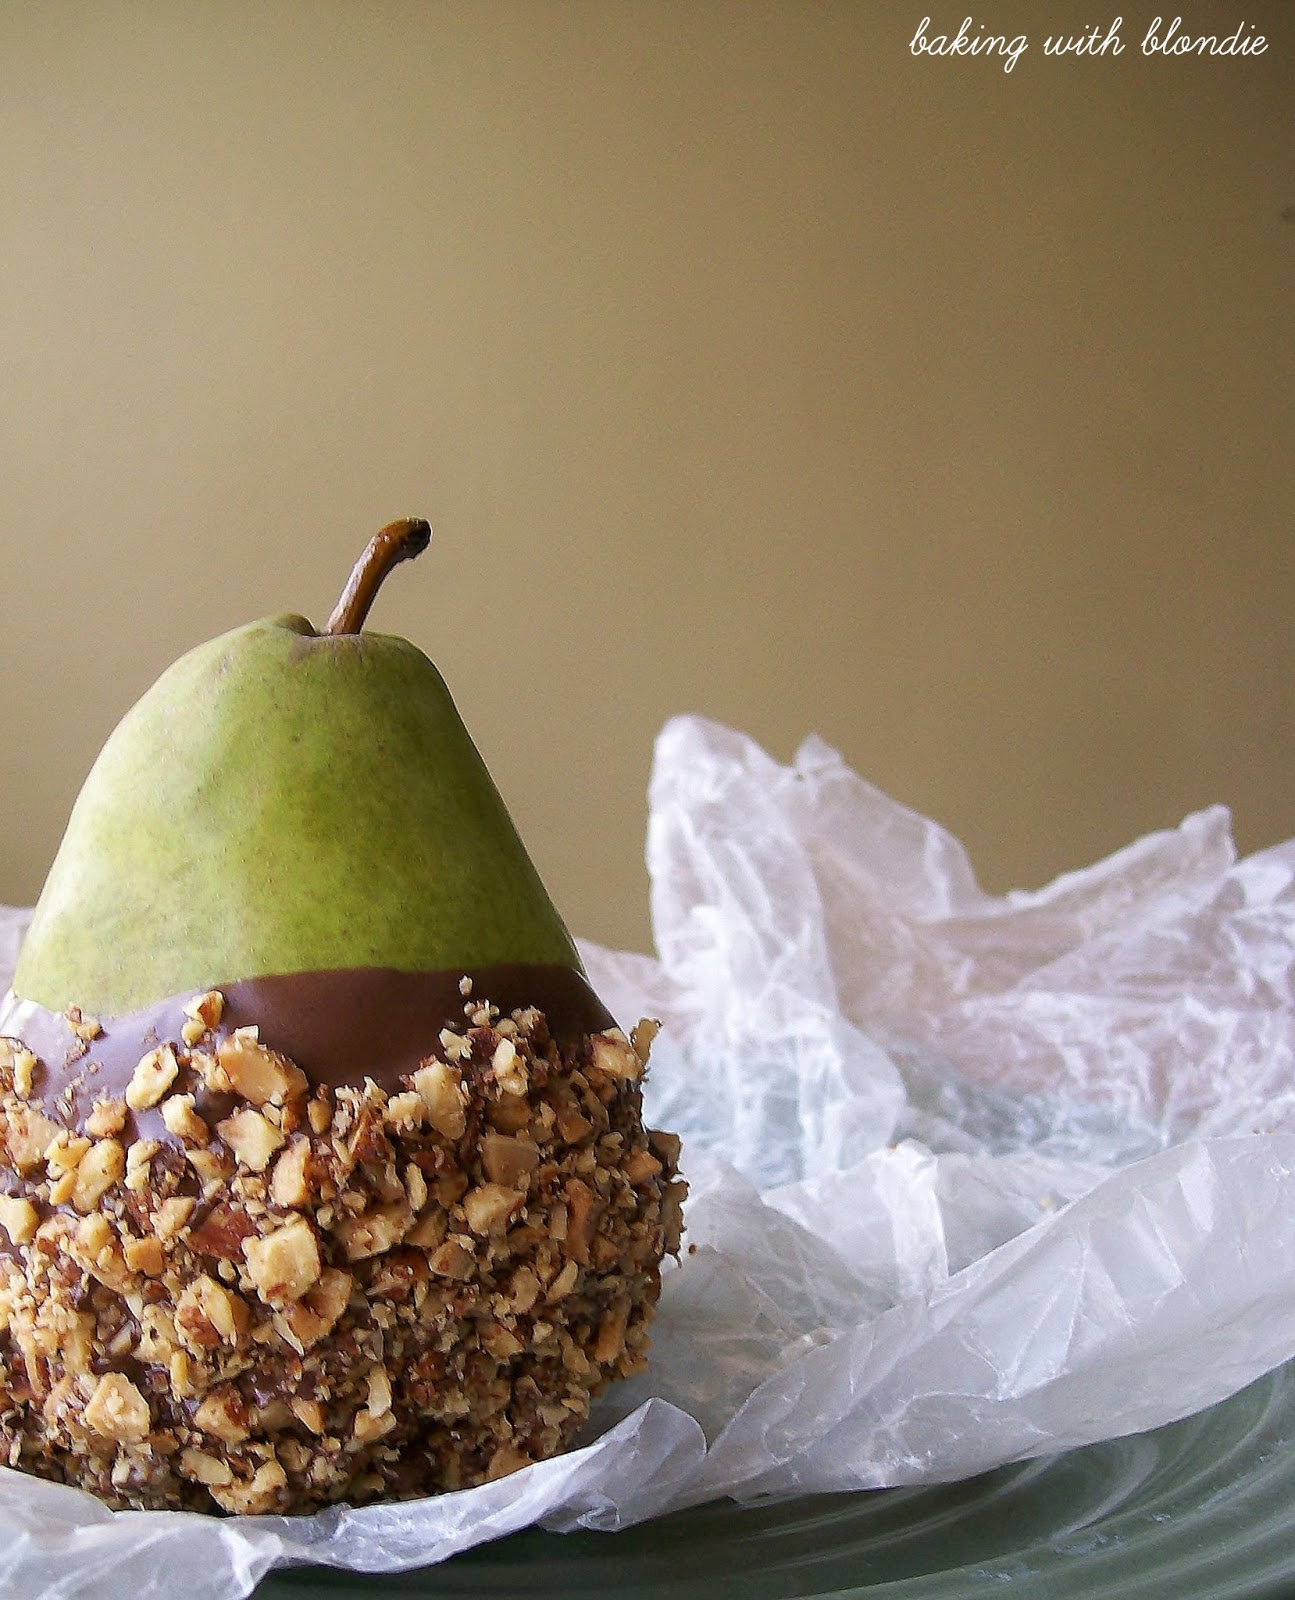 Baking with Blondie : Chocolate Dipped Pears with Salted ...